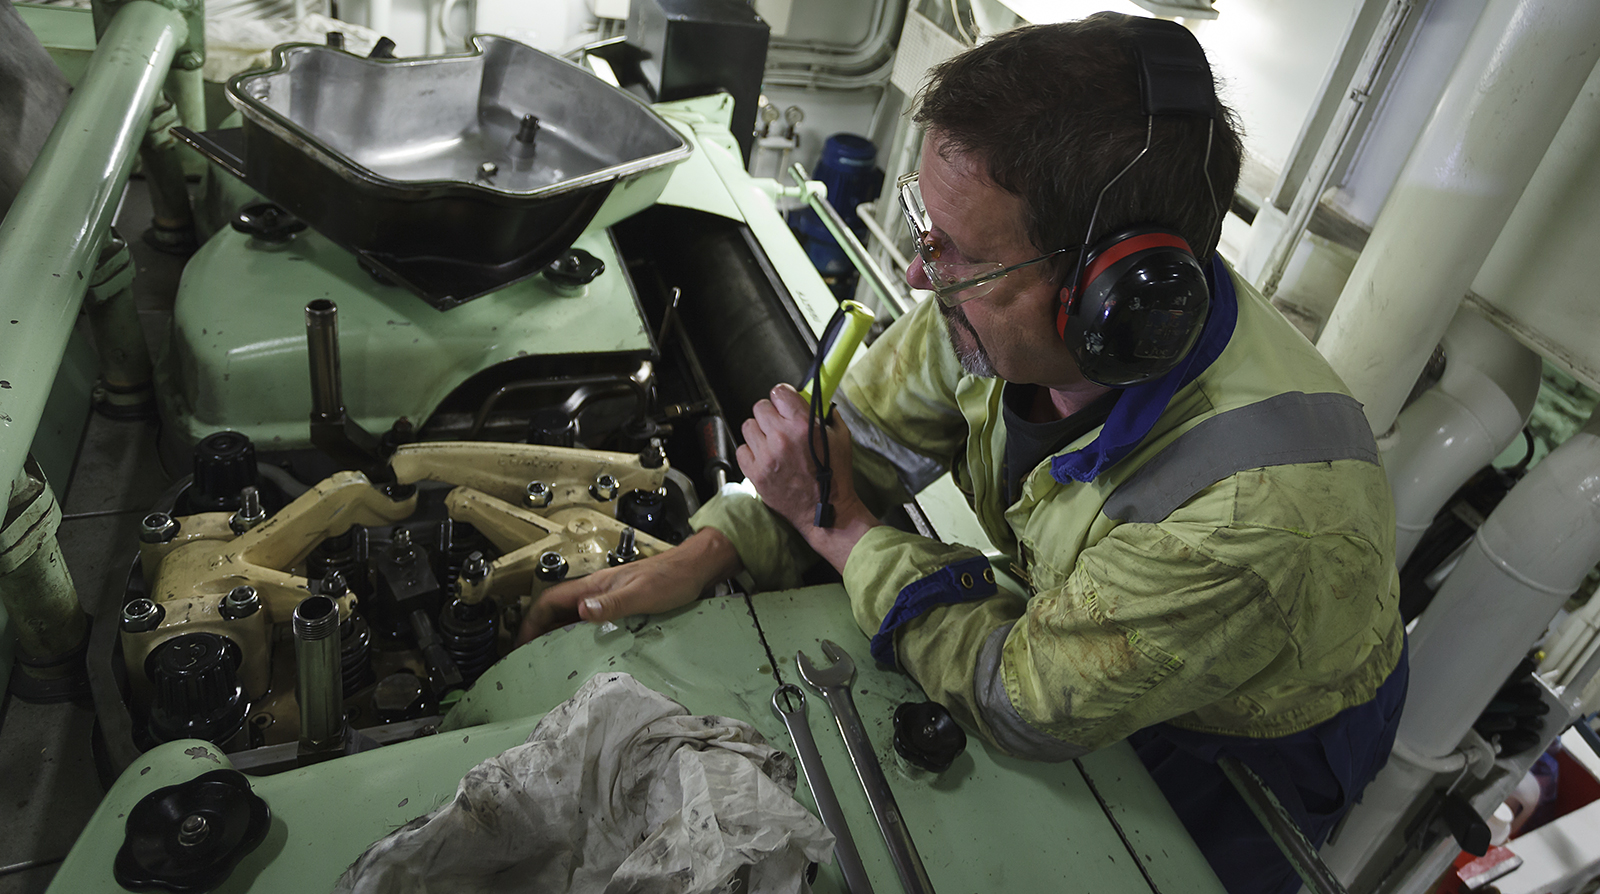 yacht engineer working on planned maintenance system